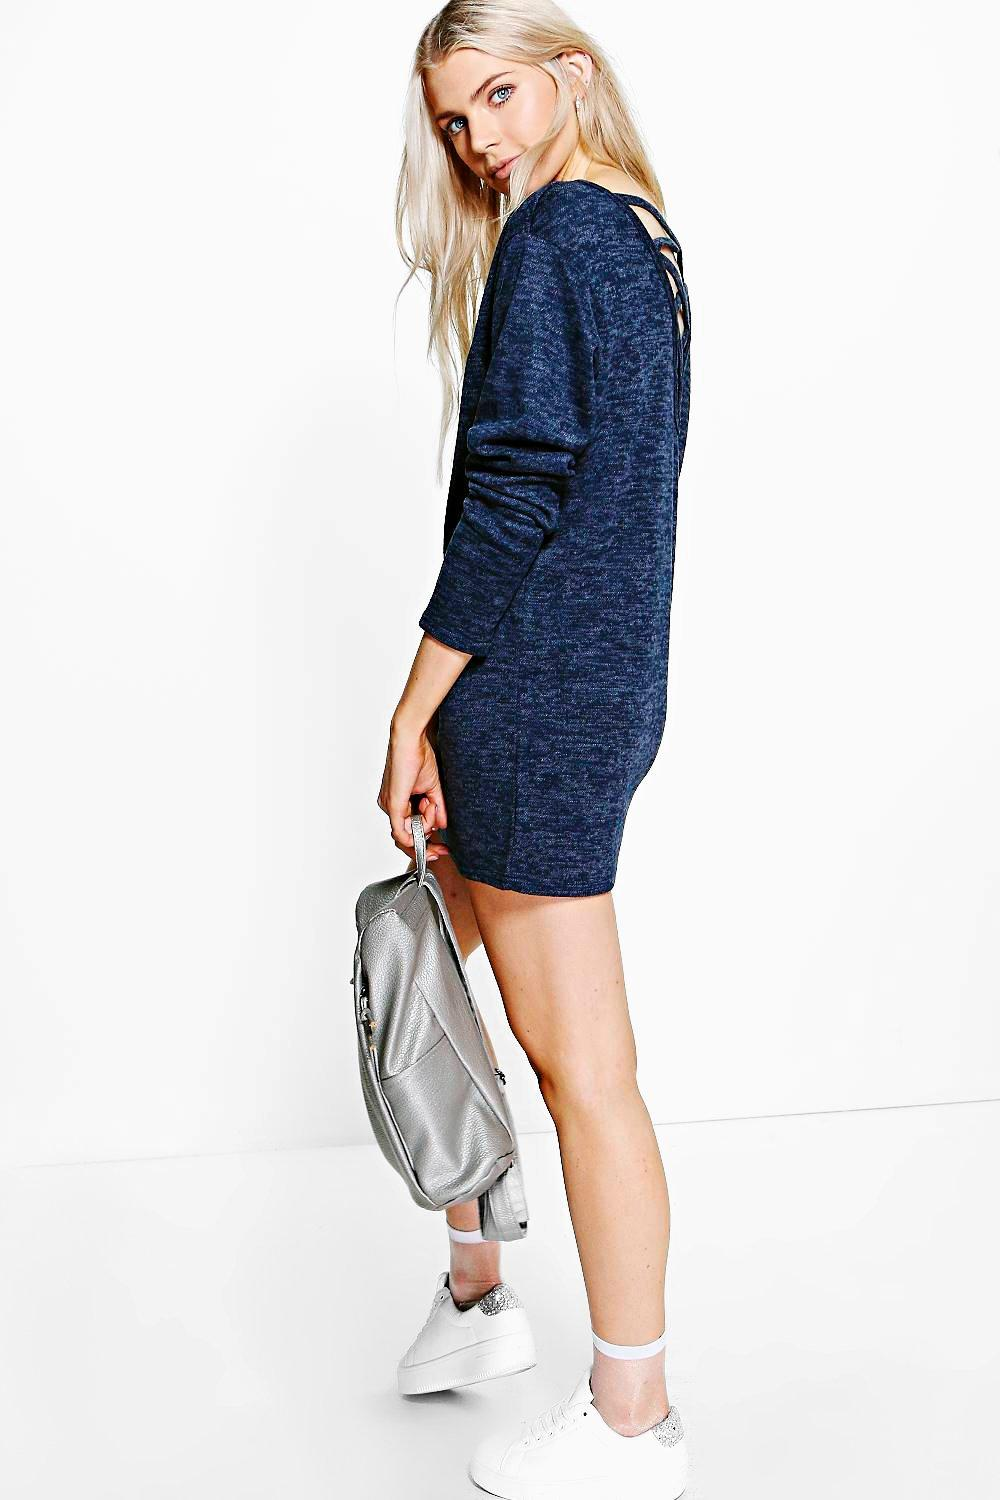 Hebe Cross Back Sweatshirt Dress